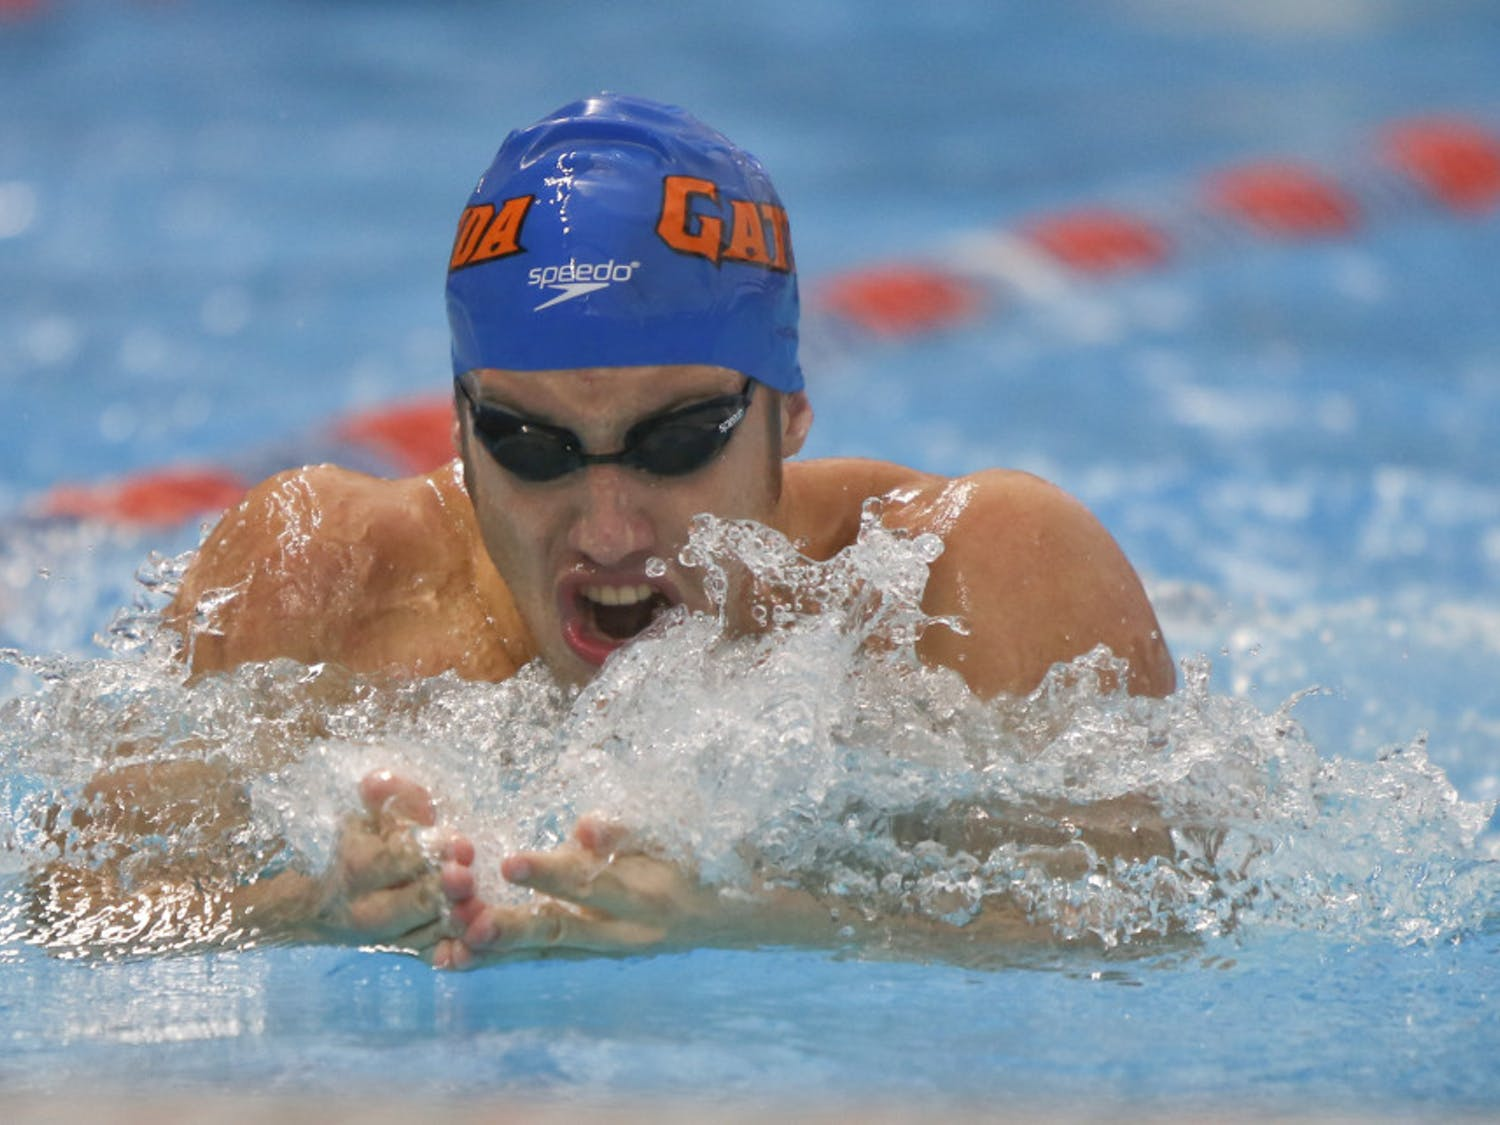 Junior Matt Elliott competes in the men's open 100 breast at the Pinch a Penny All-Florida Invitation at the Stephen C. O'Connell Center on Sept. 28.